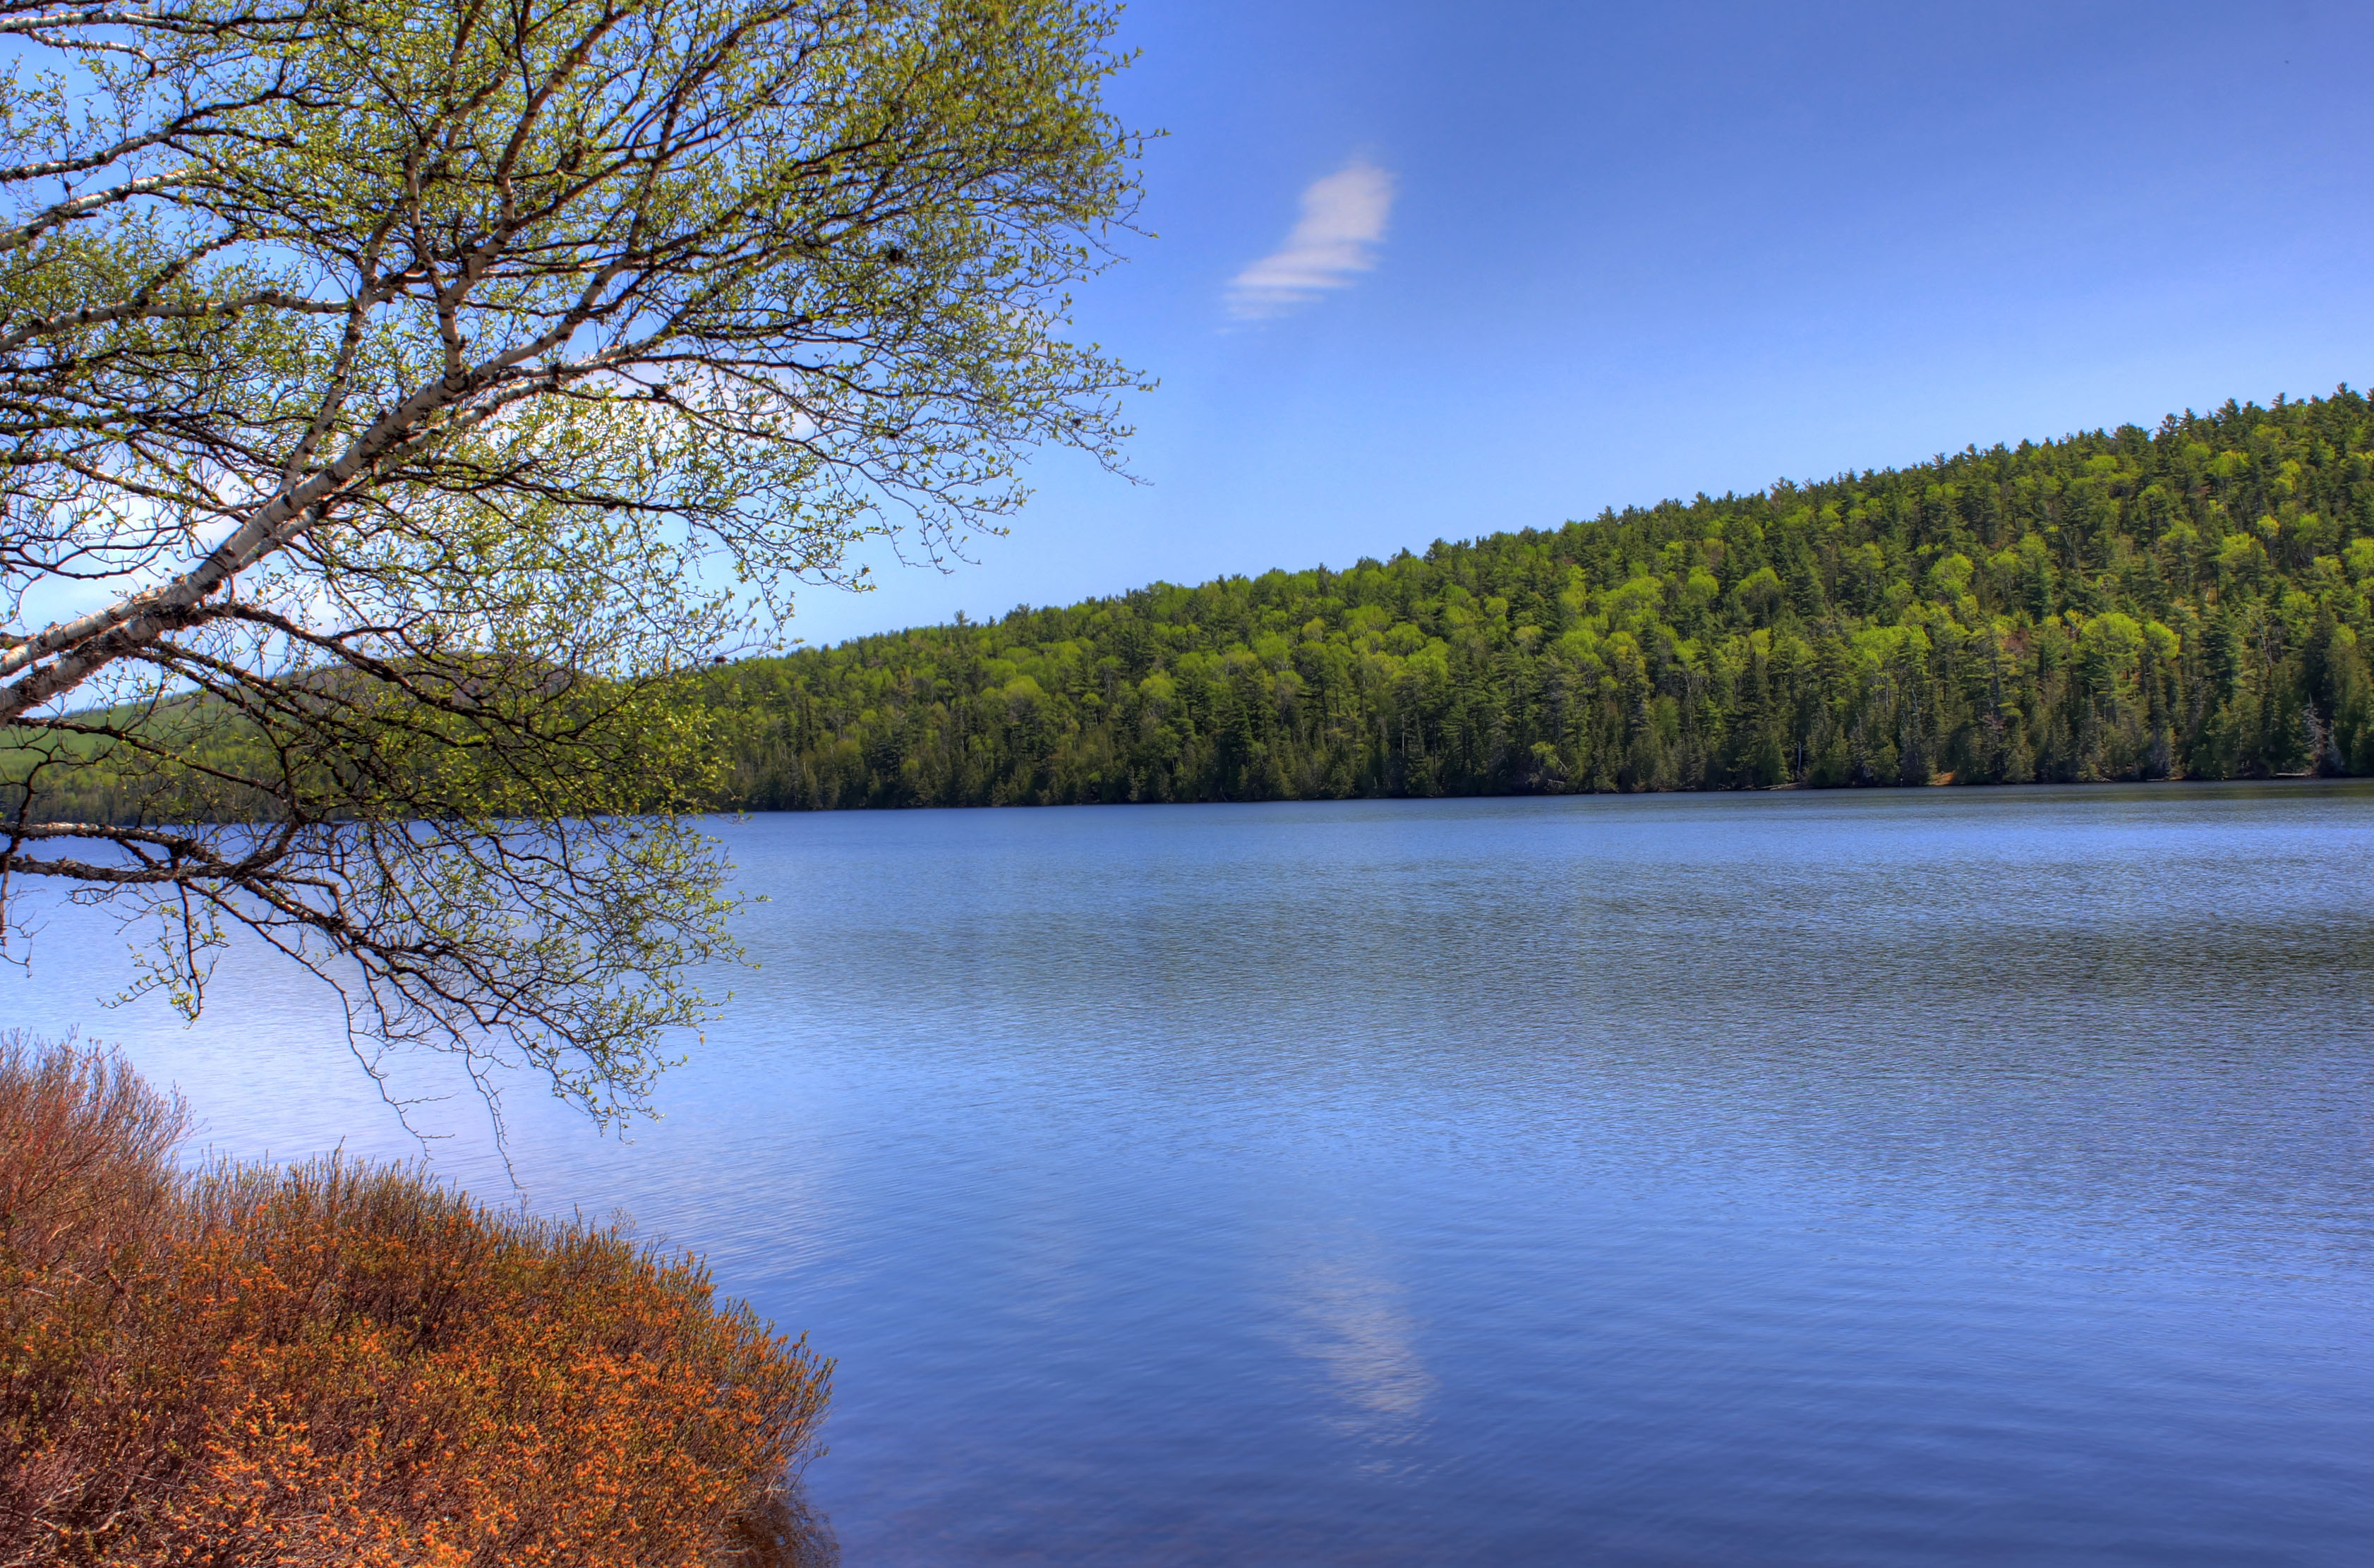 Scenic Lake Photo At Fort Wilkens State Park, Michigan